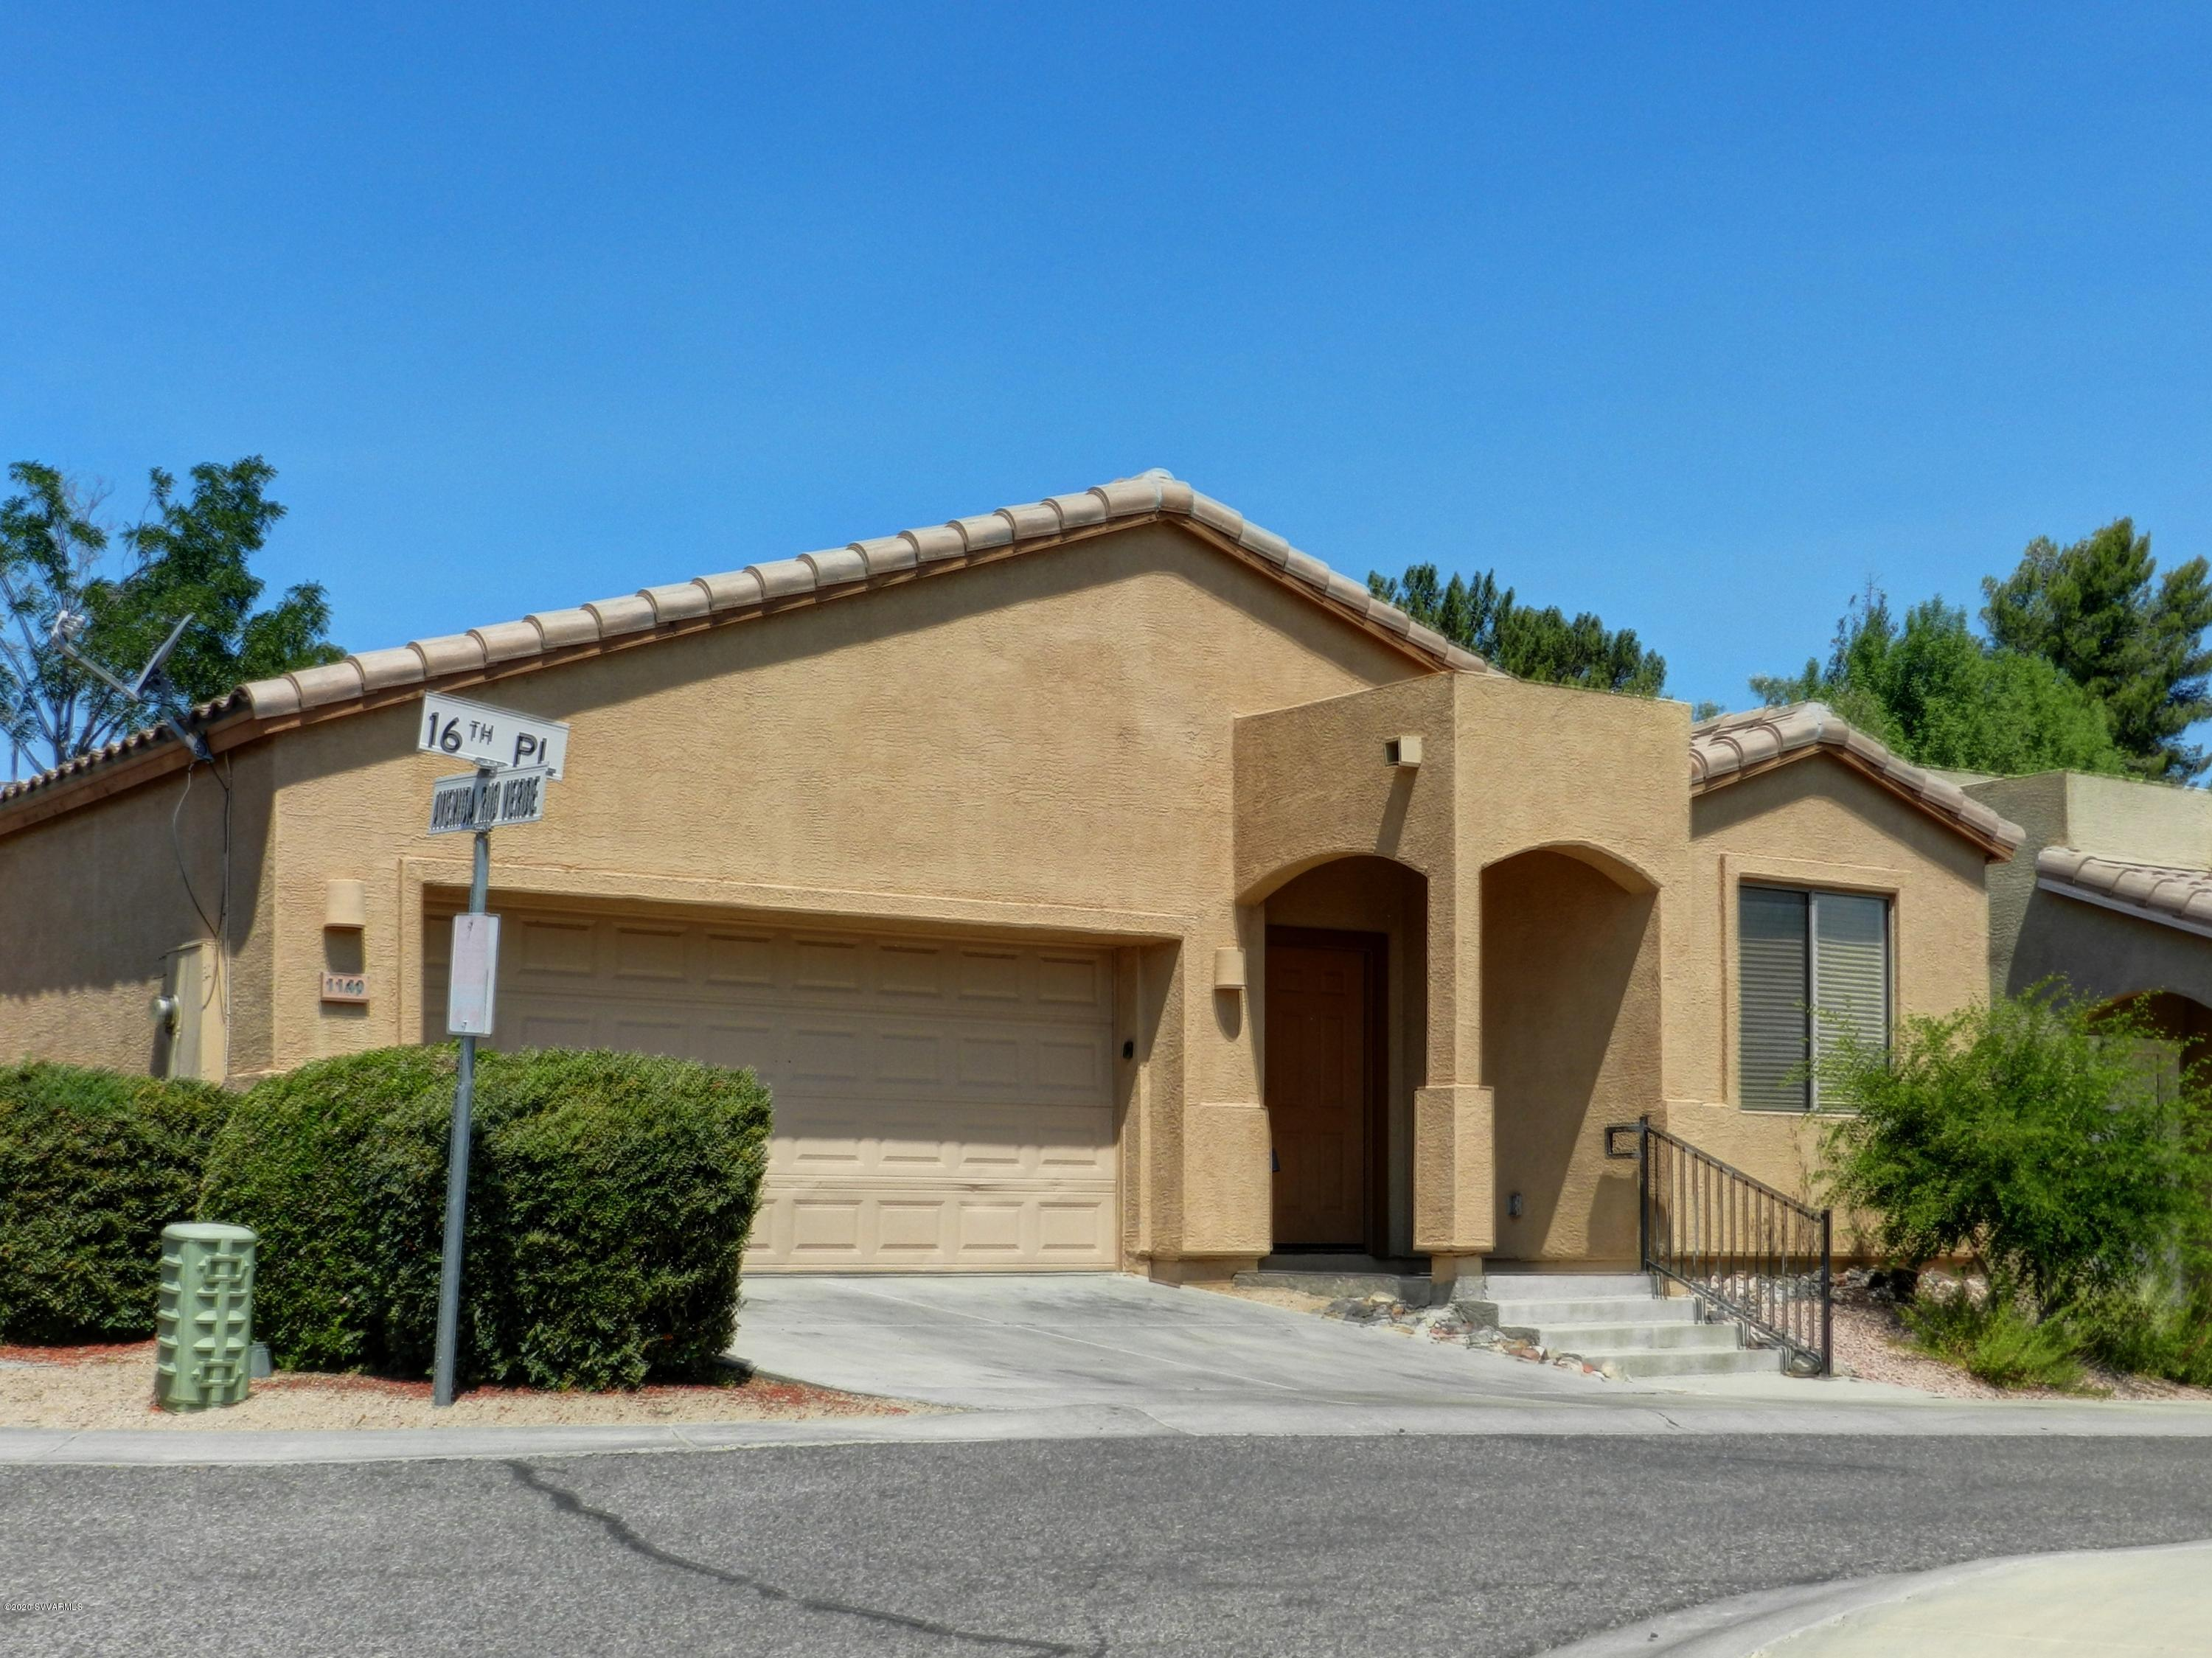 1140 S 16th Place Cottonwood, AZ 86326